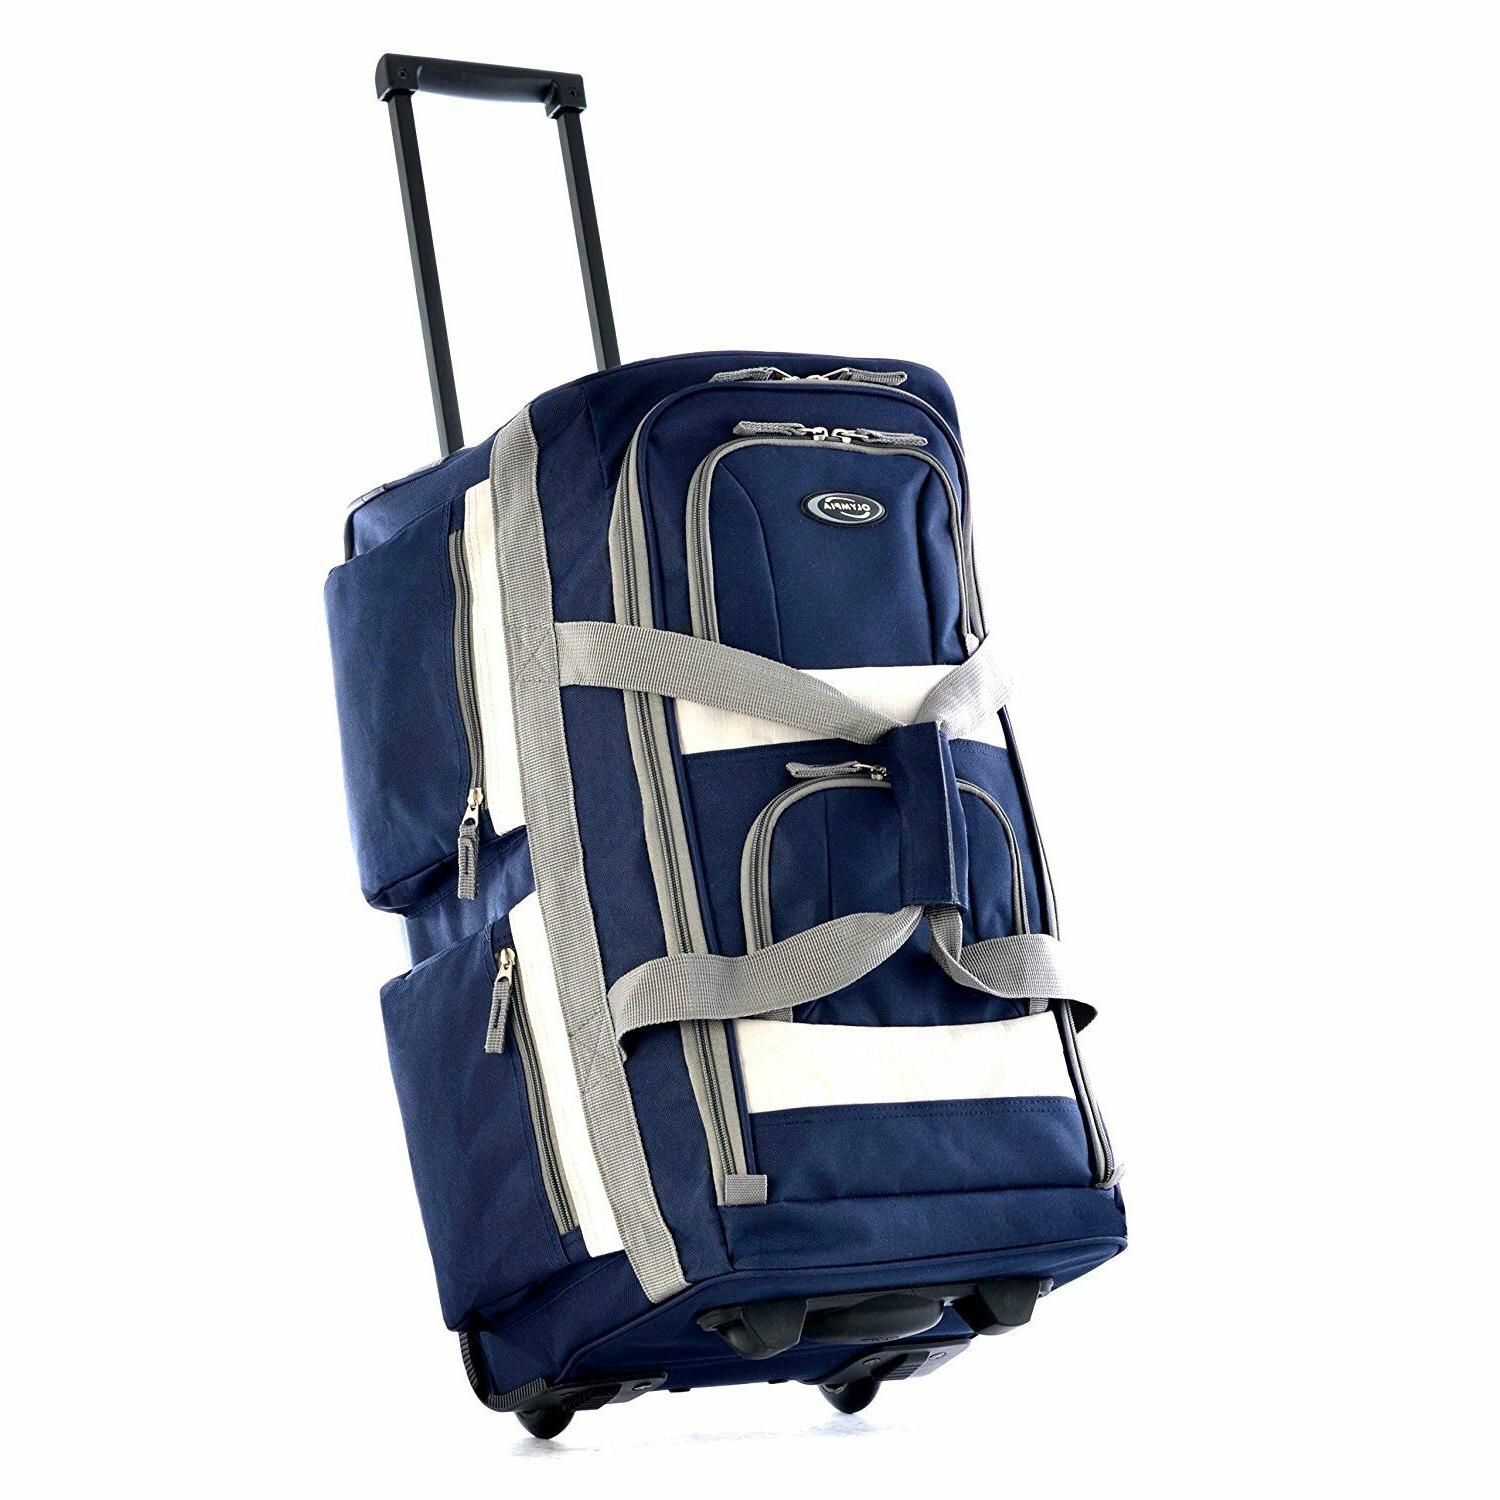 26 Inch Navy Blue Duffel Rolling Luggage Suitcase Bag Olympi